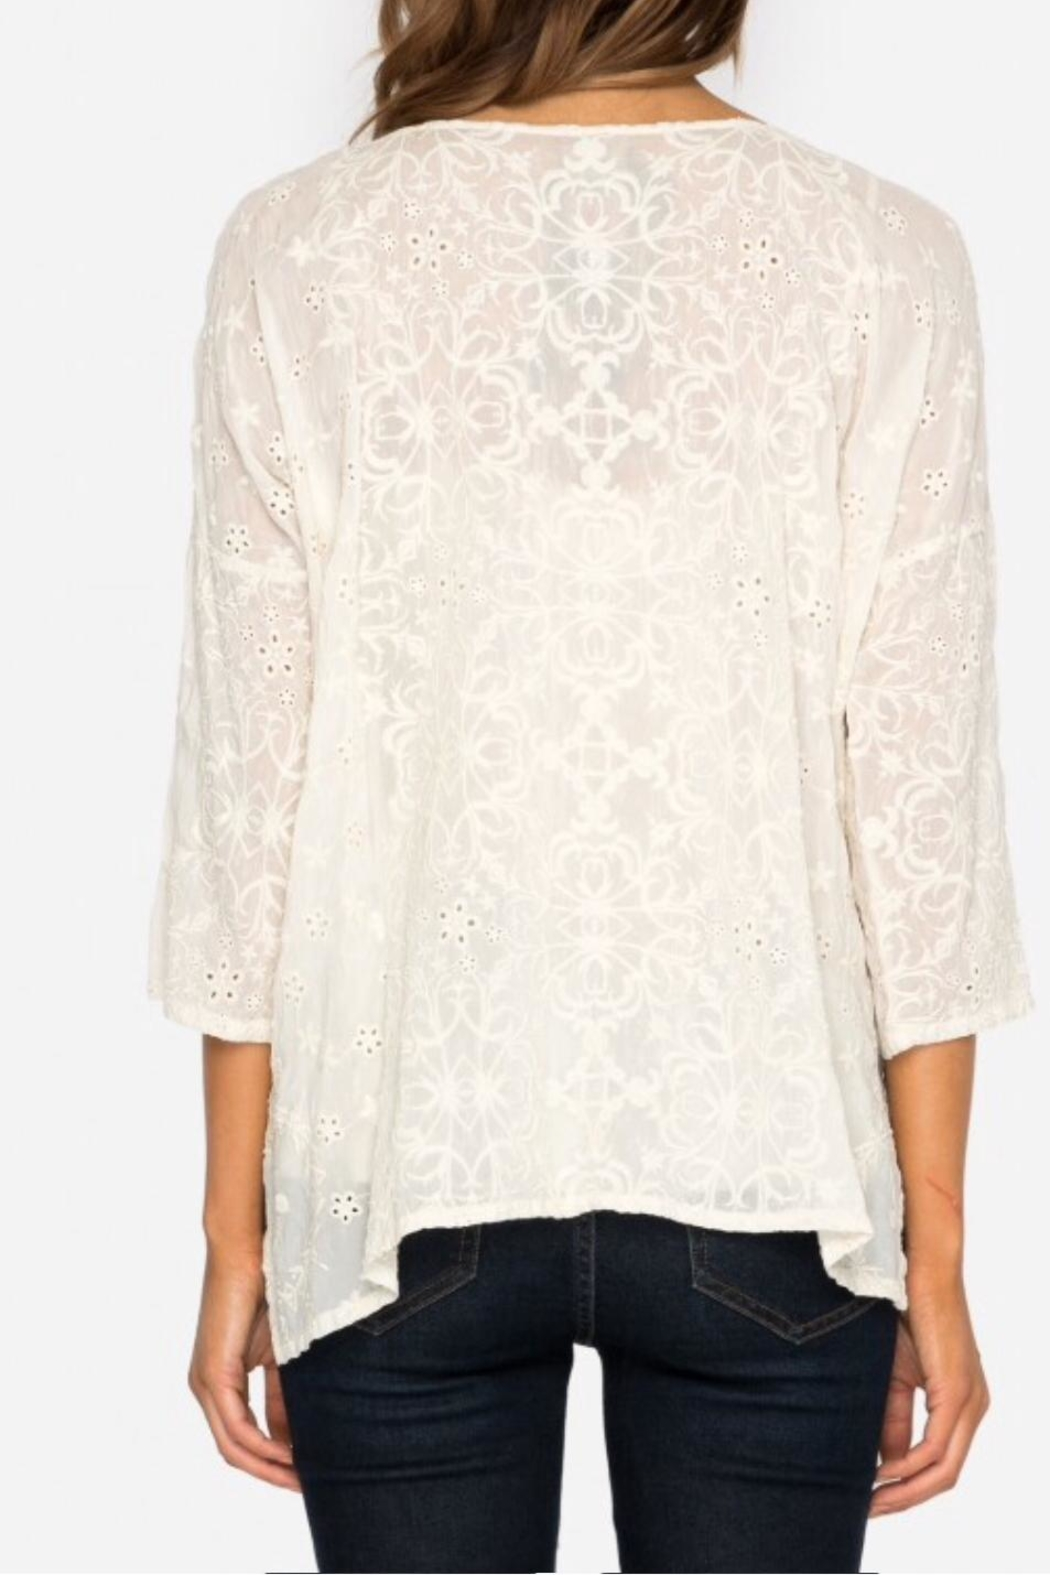 Johnny Was Jossy Embroiderd Blouse - Back Cropped Image